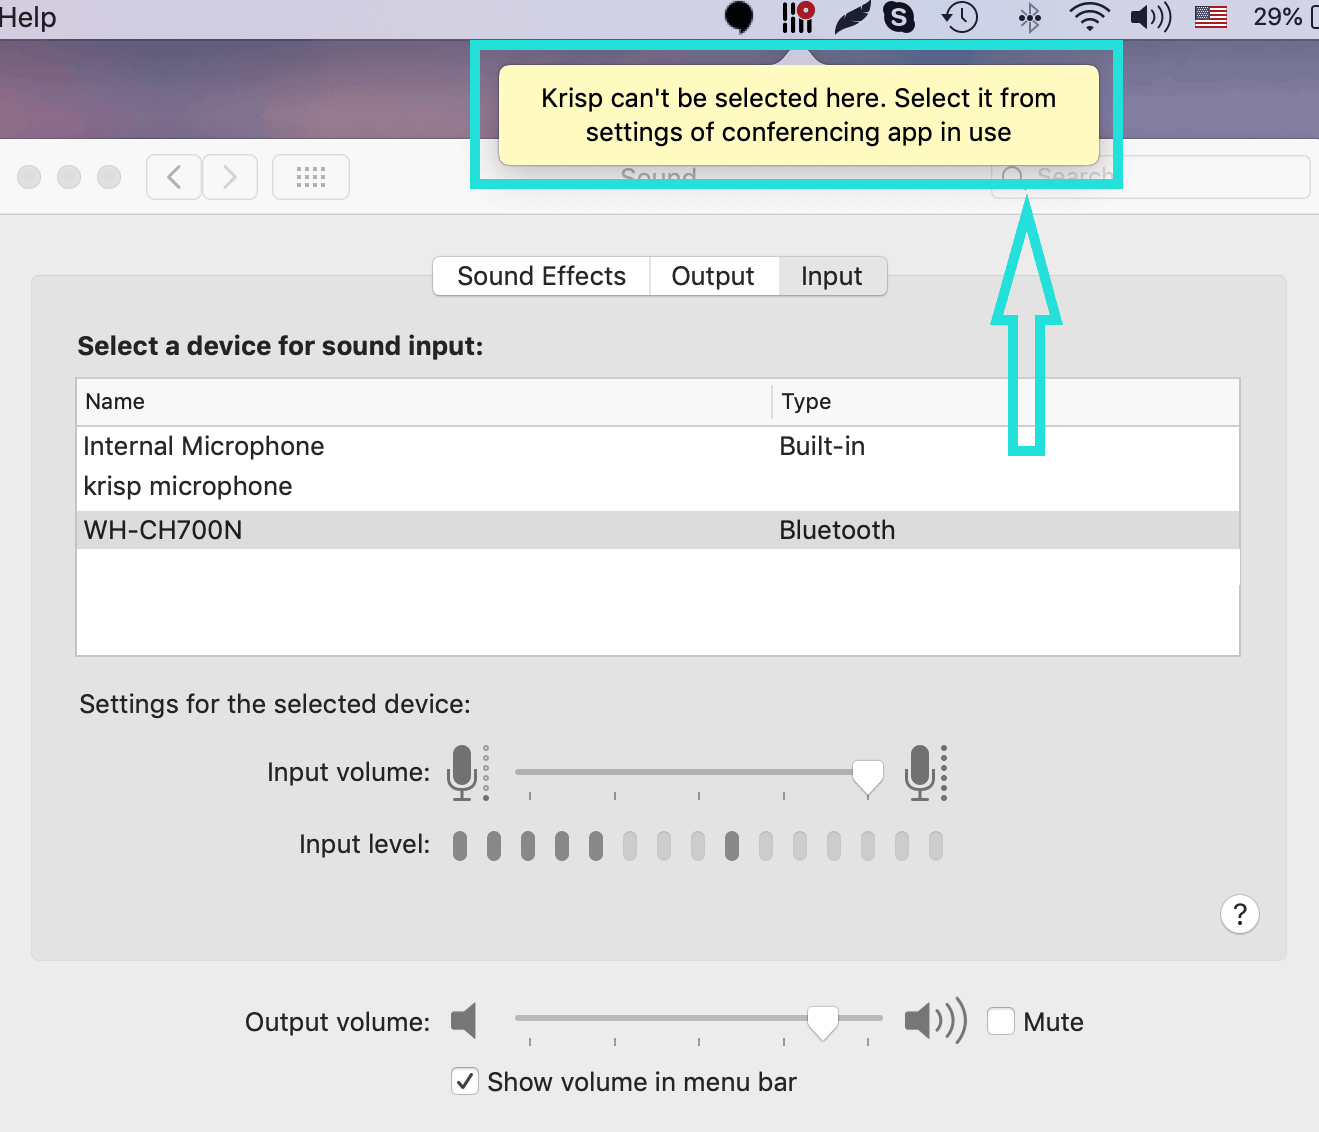 krisp sound preferences popup